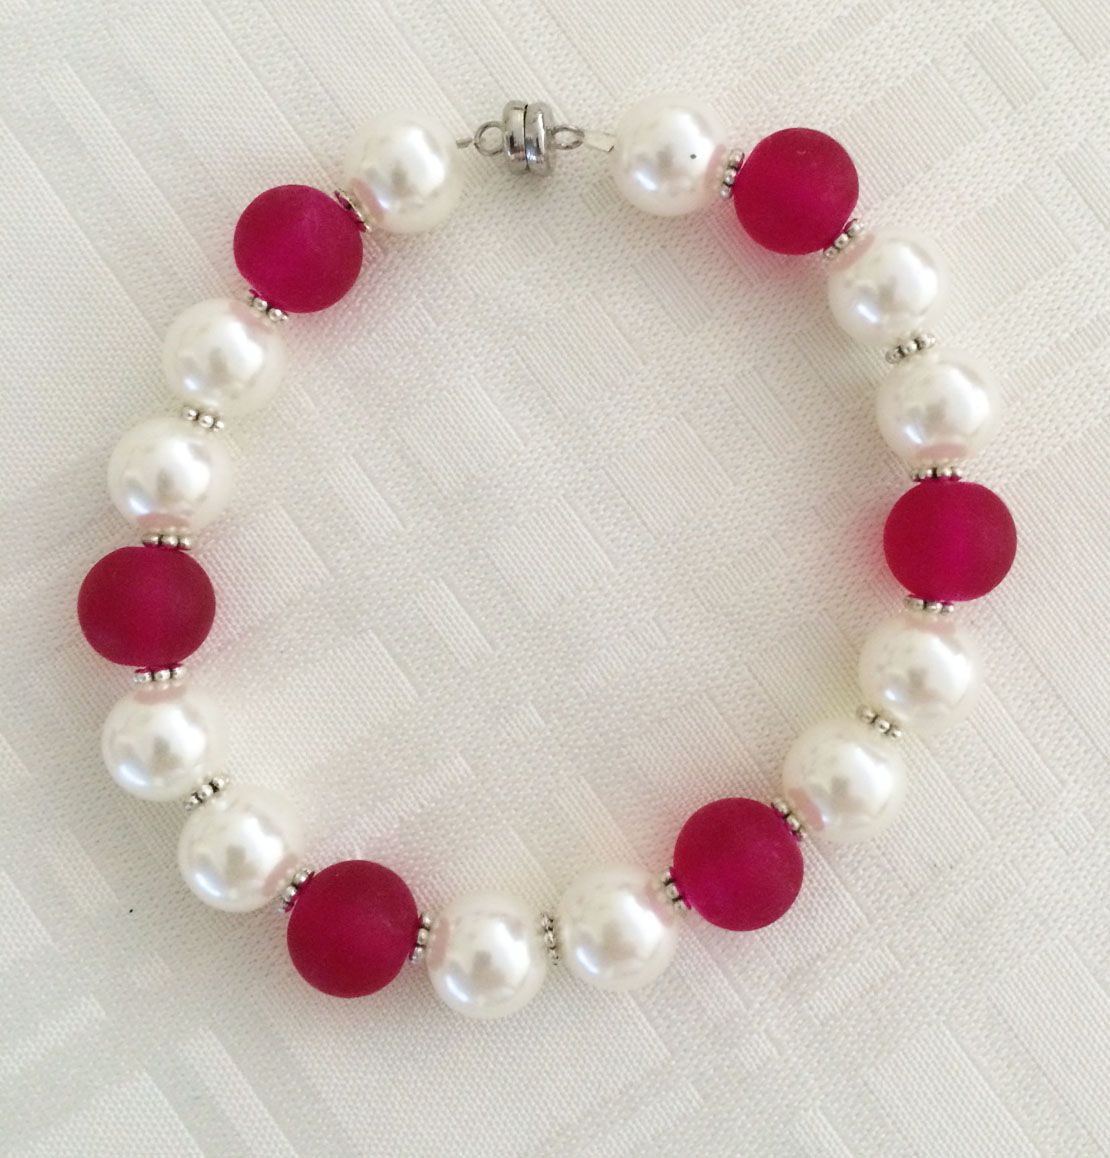 Pink frosted glass beads, faux pearls. 40 dirham. Magnetic closure.